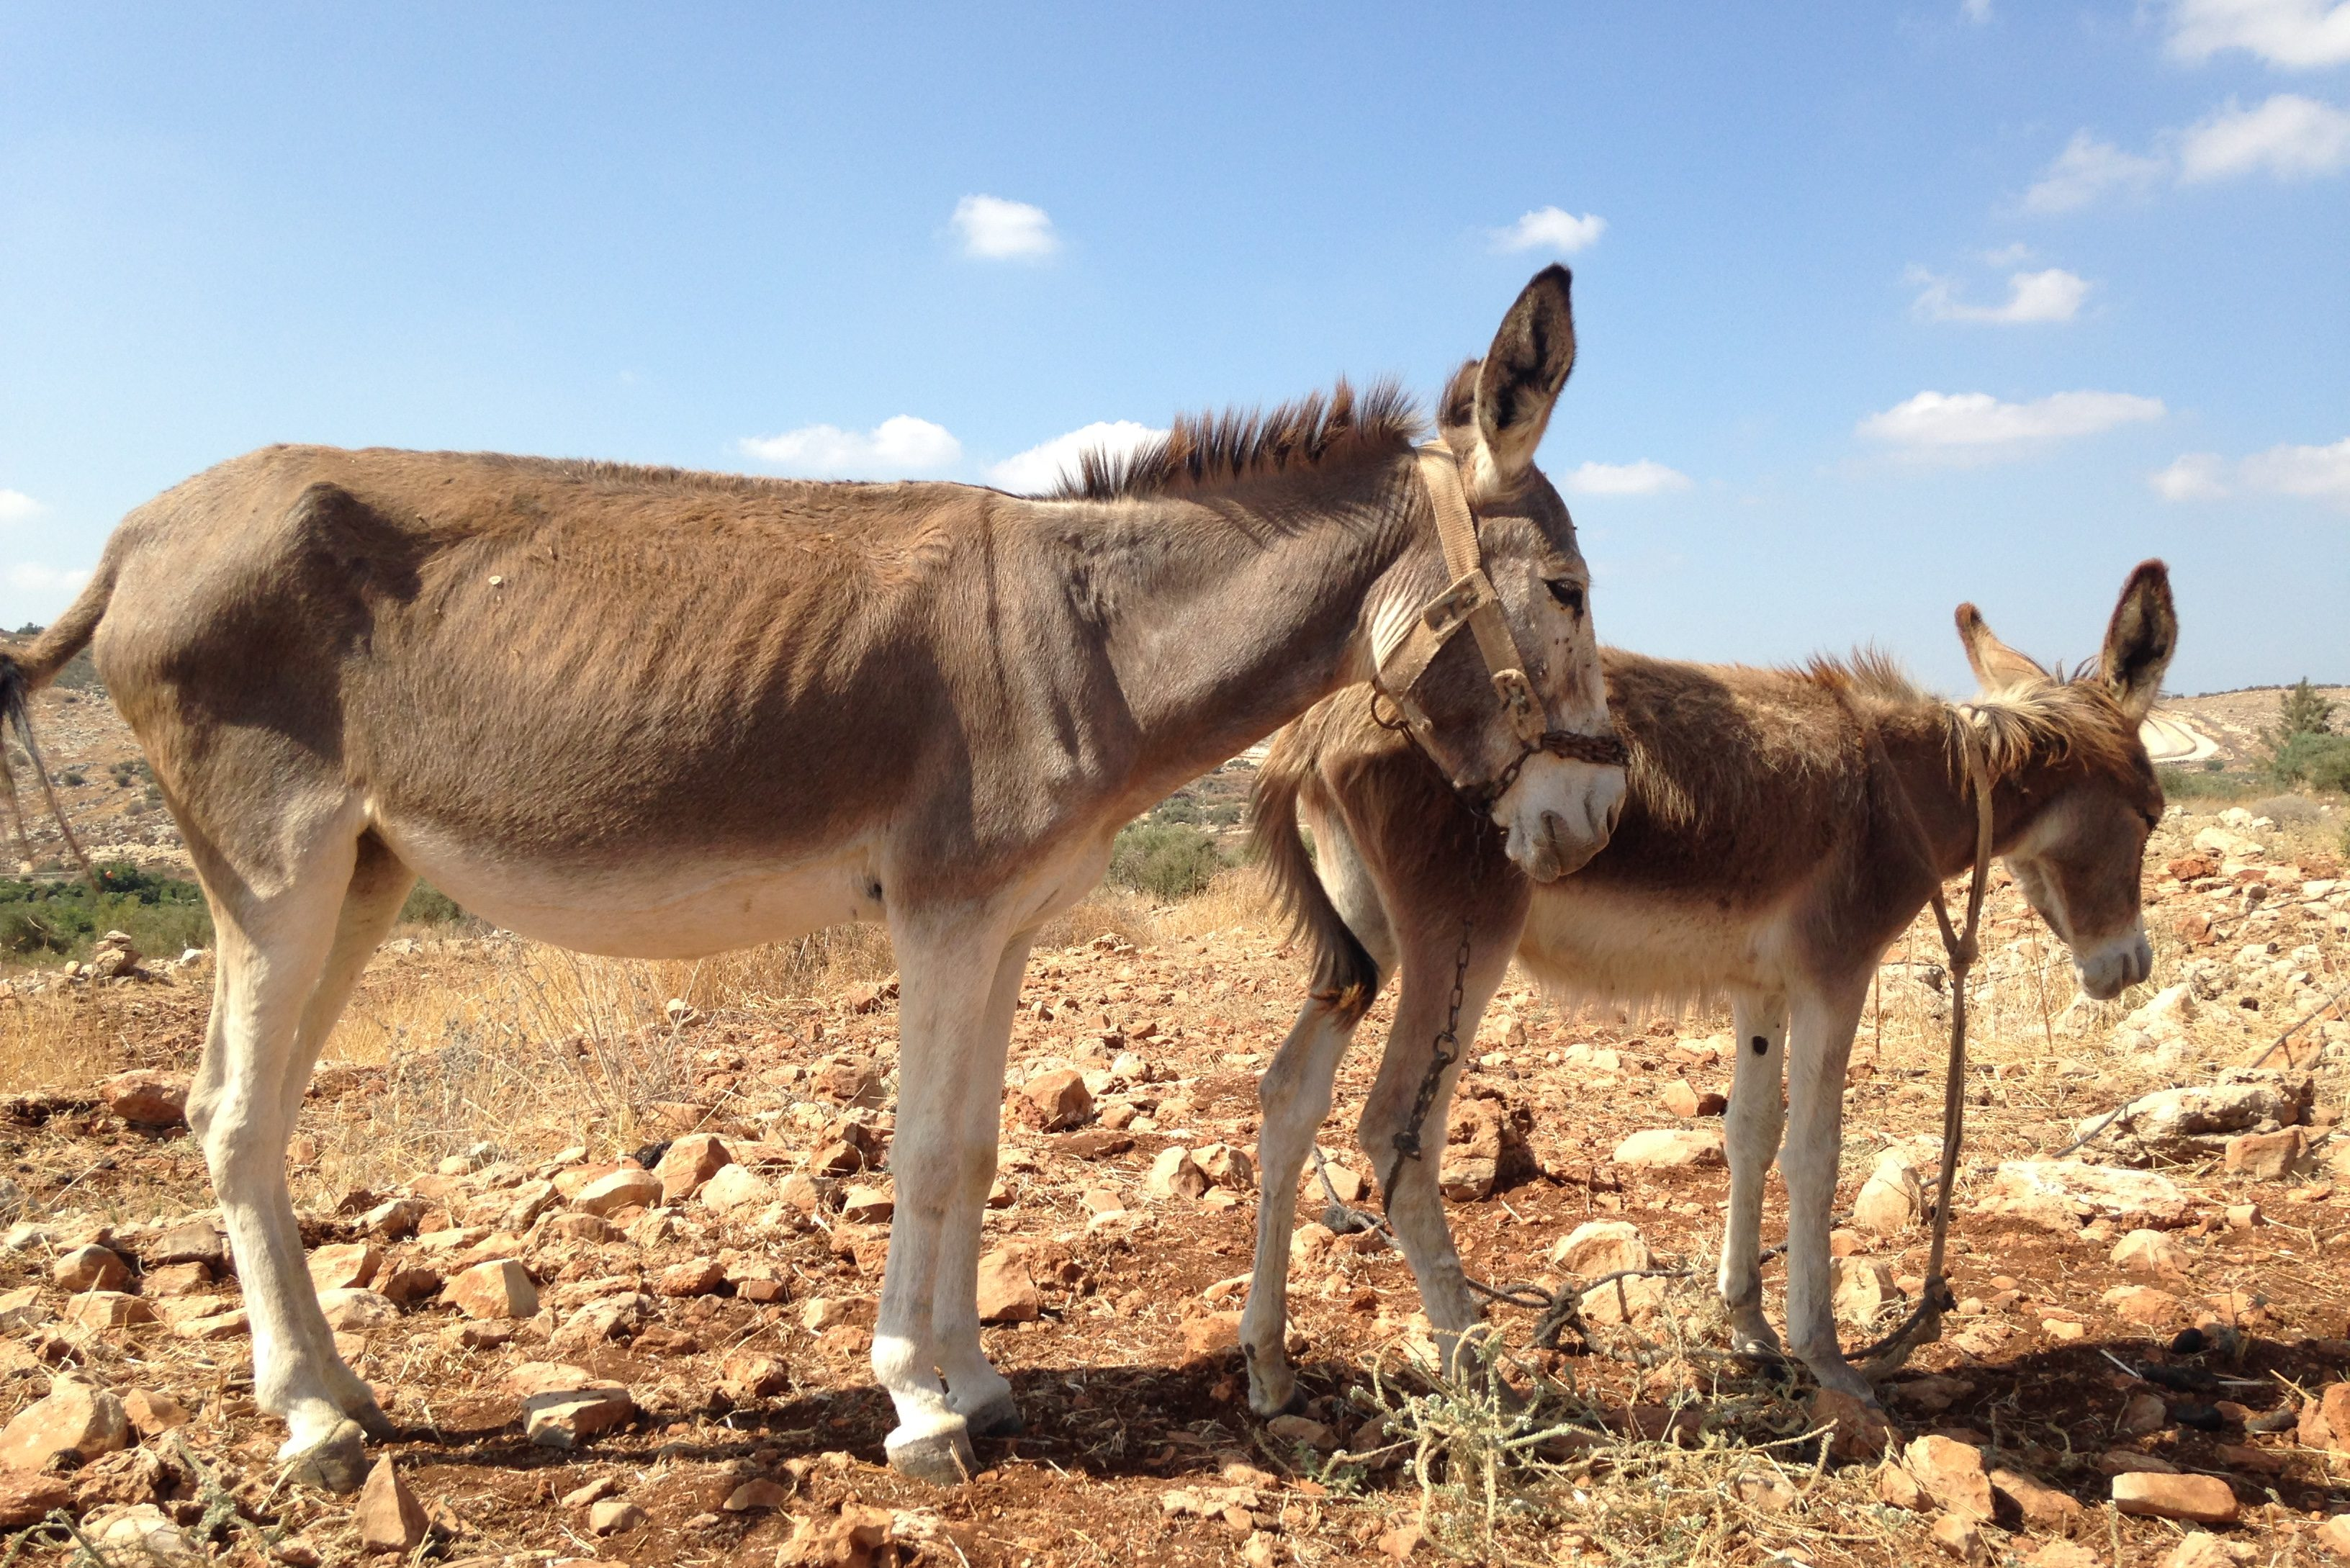 Horse and Donkey Welfare